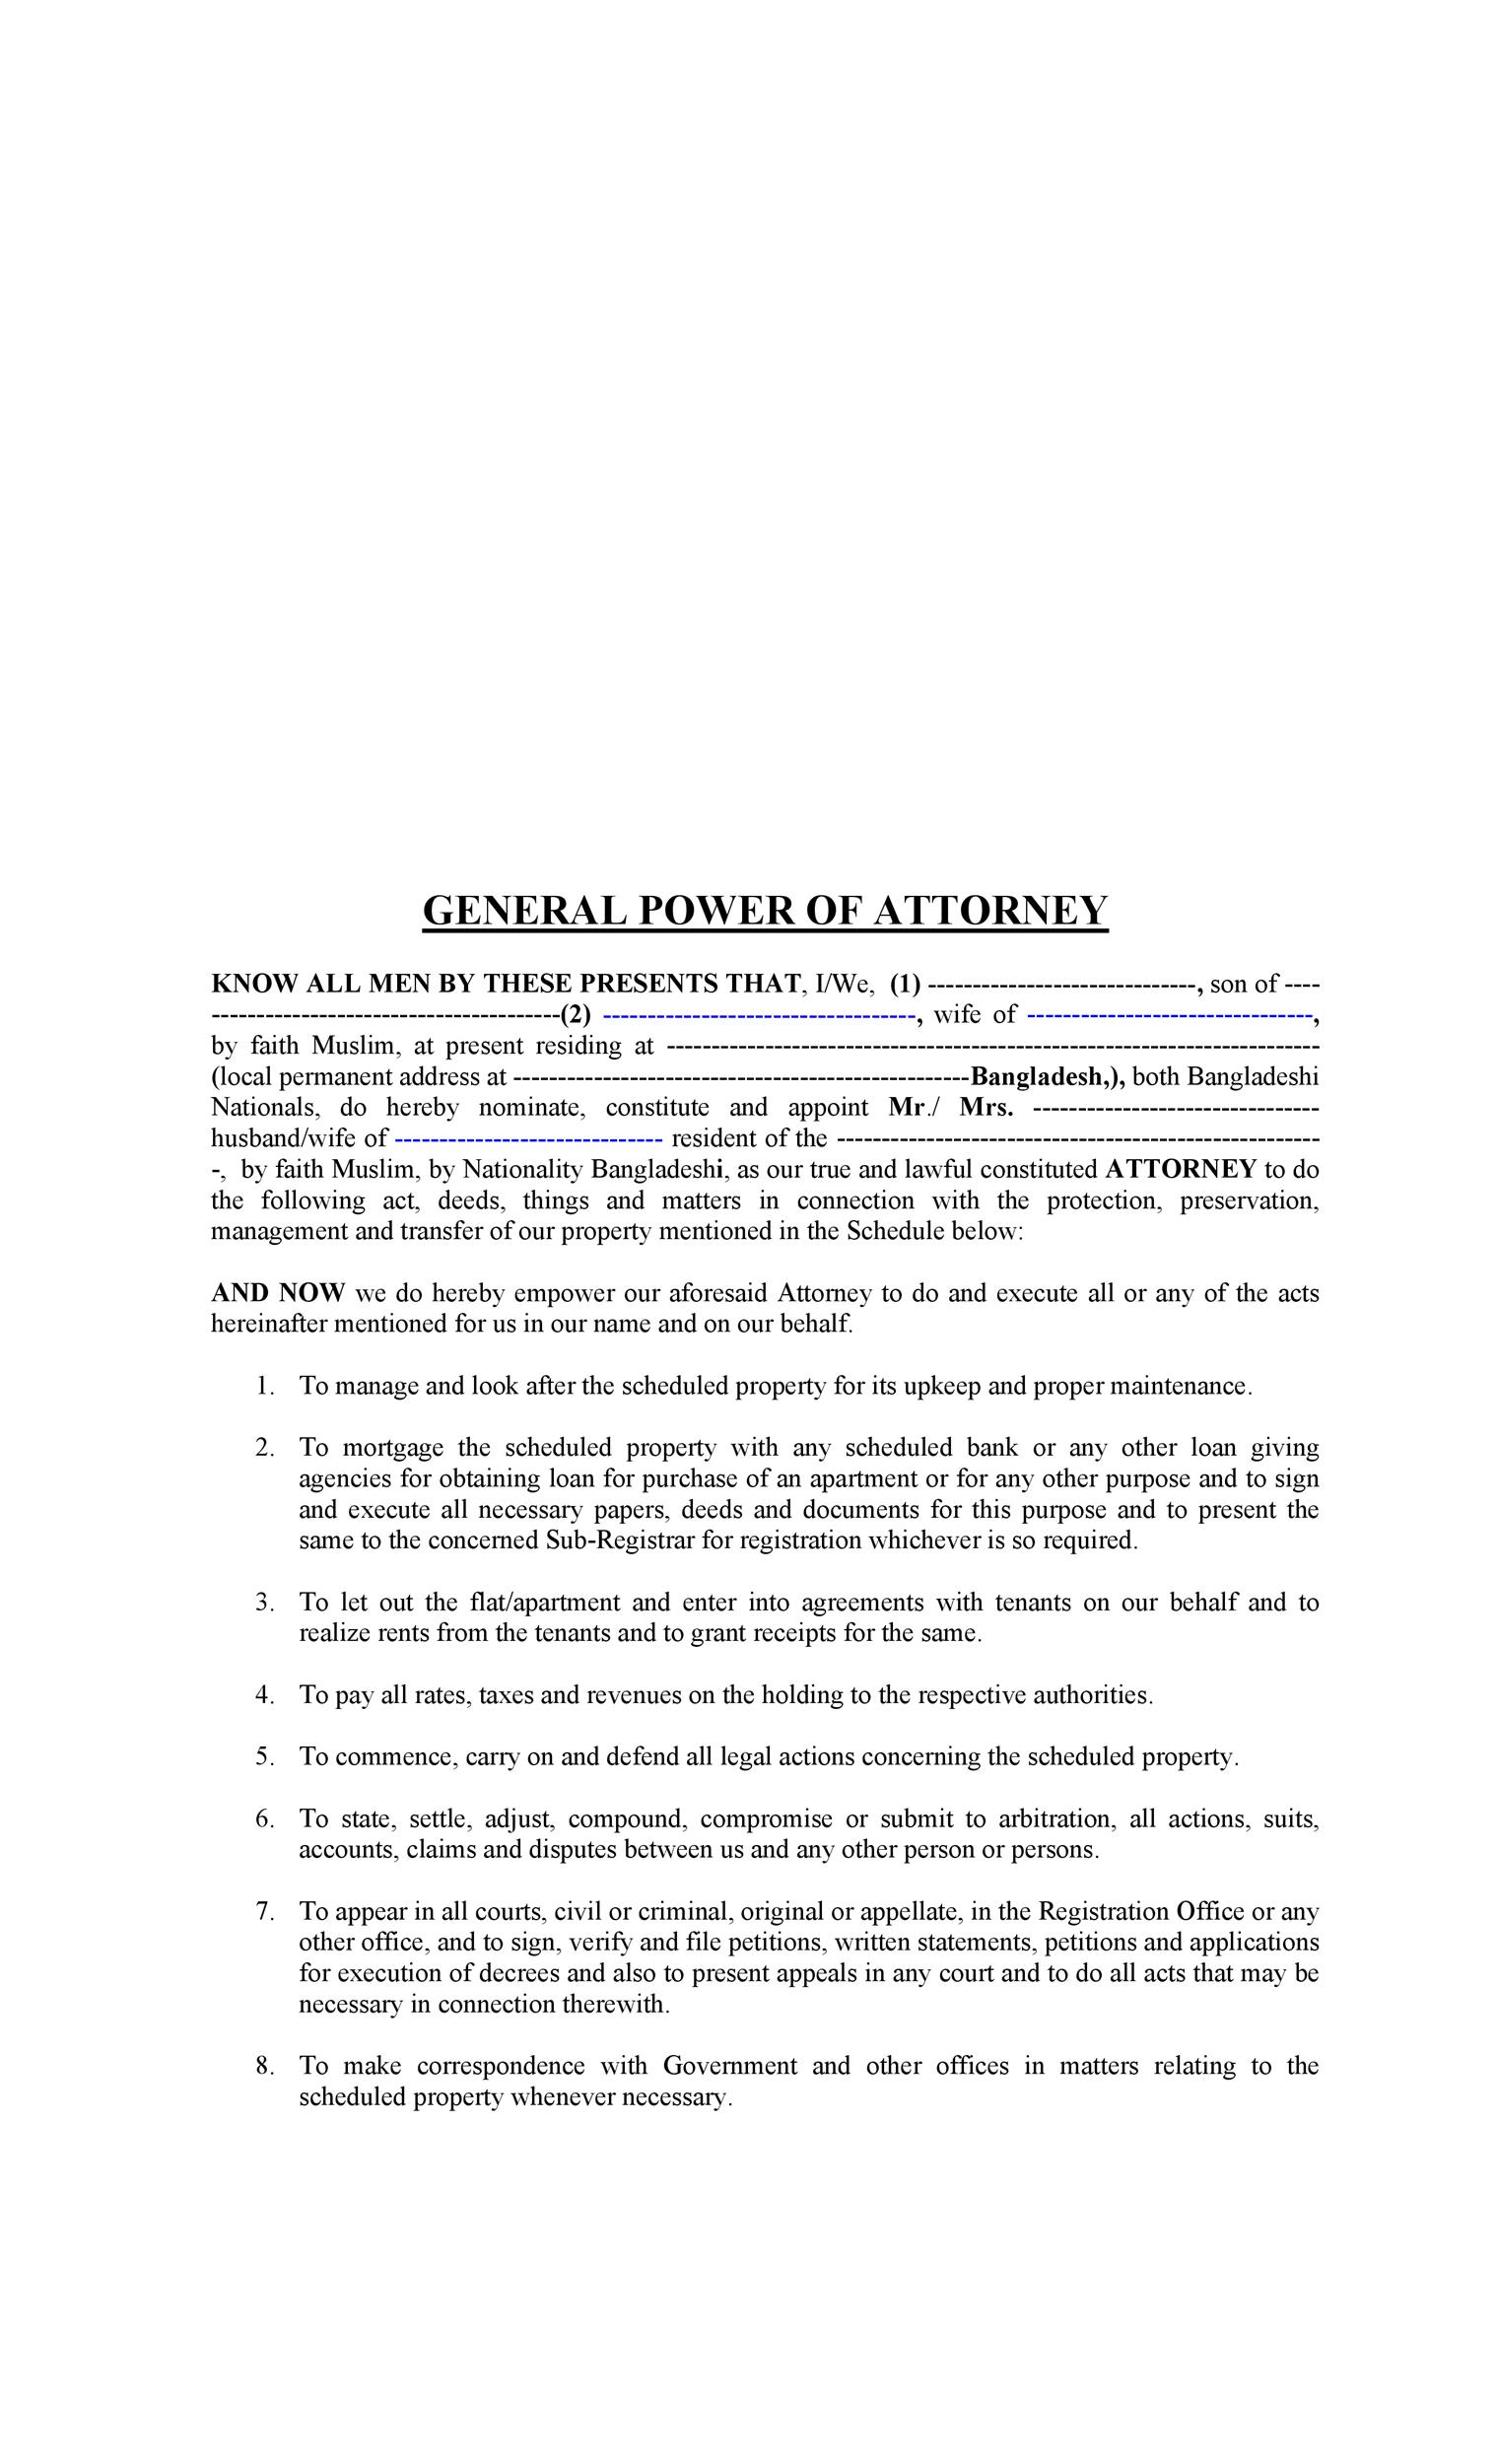 50 free power of attorney forms  u0026 templates  durable